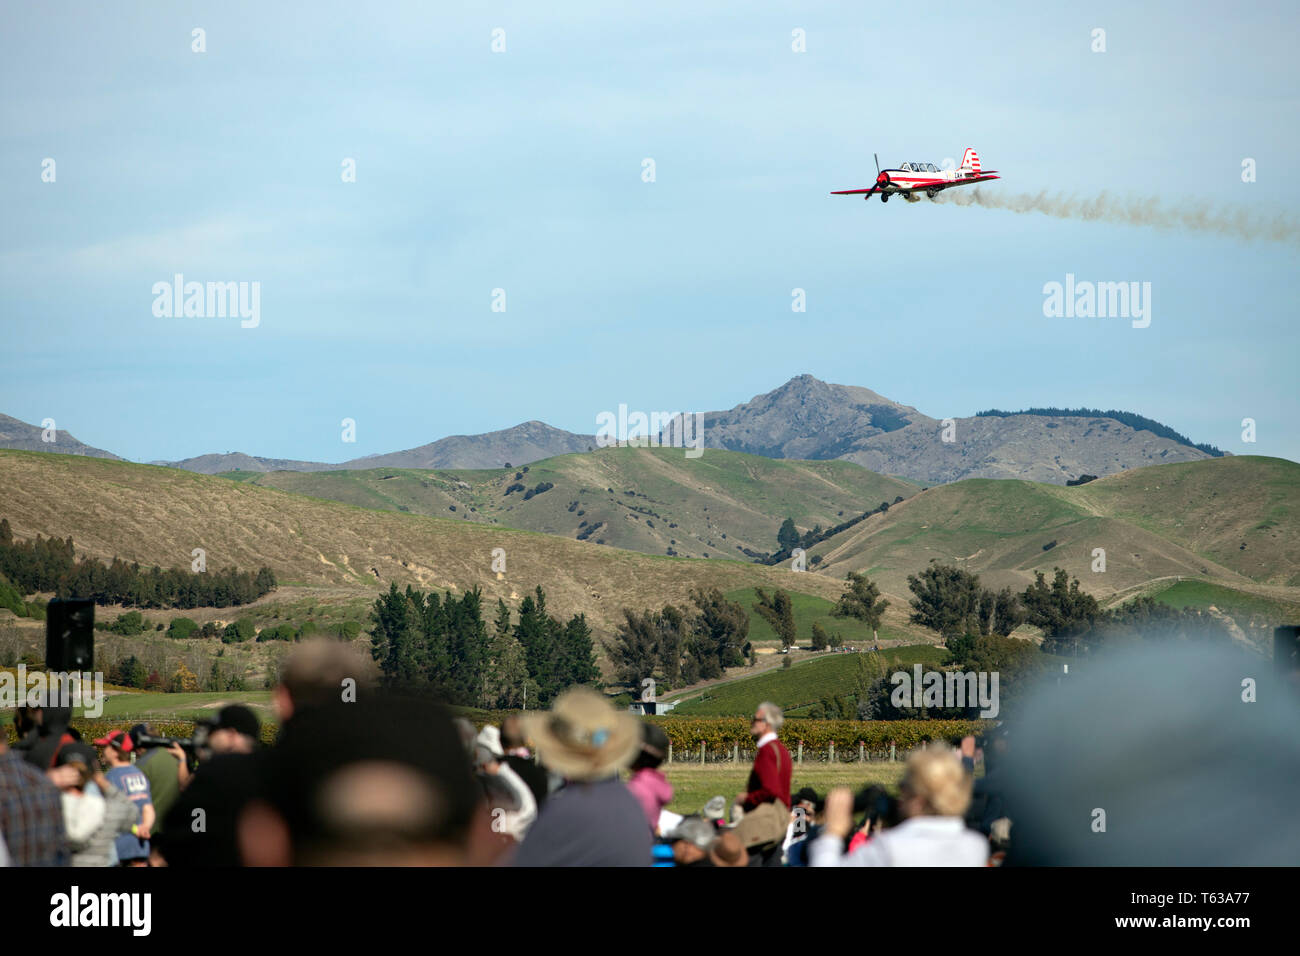 Picture by Tim Cuff - 20 April 2019 - Omaka Air Show, Blenheim, New Zealand Stock Photo